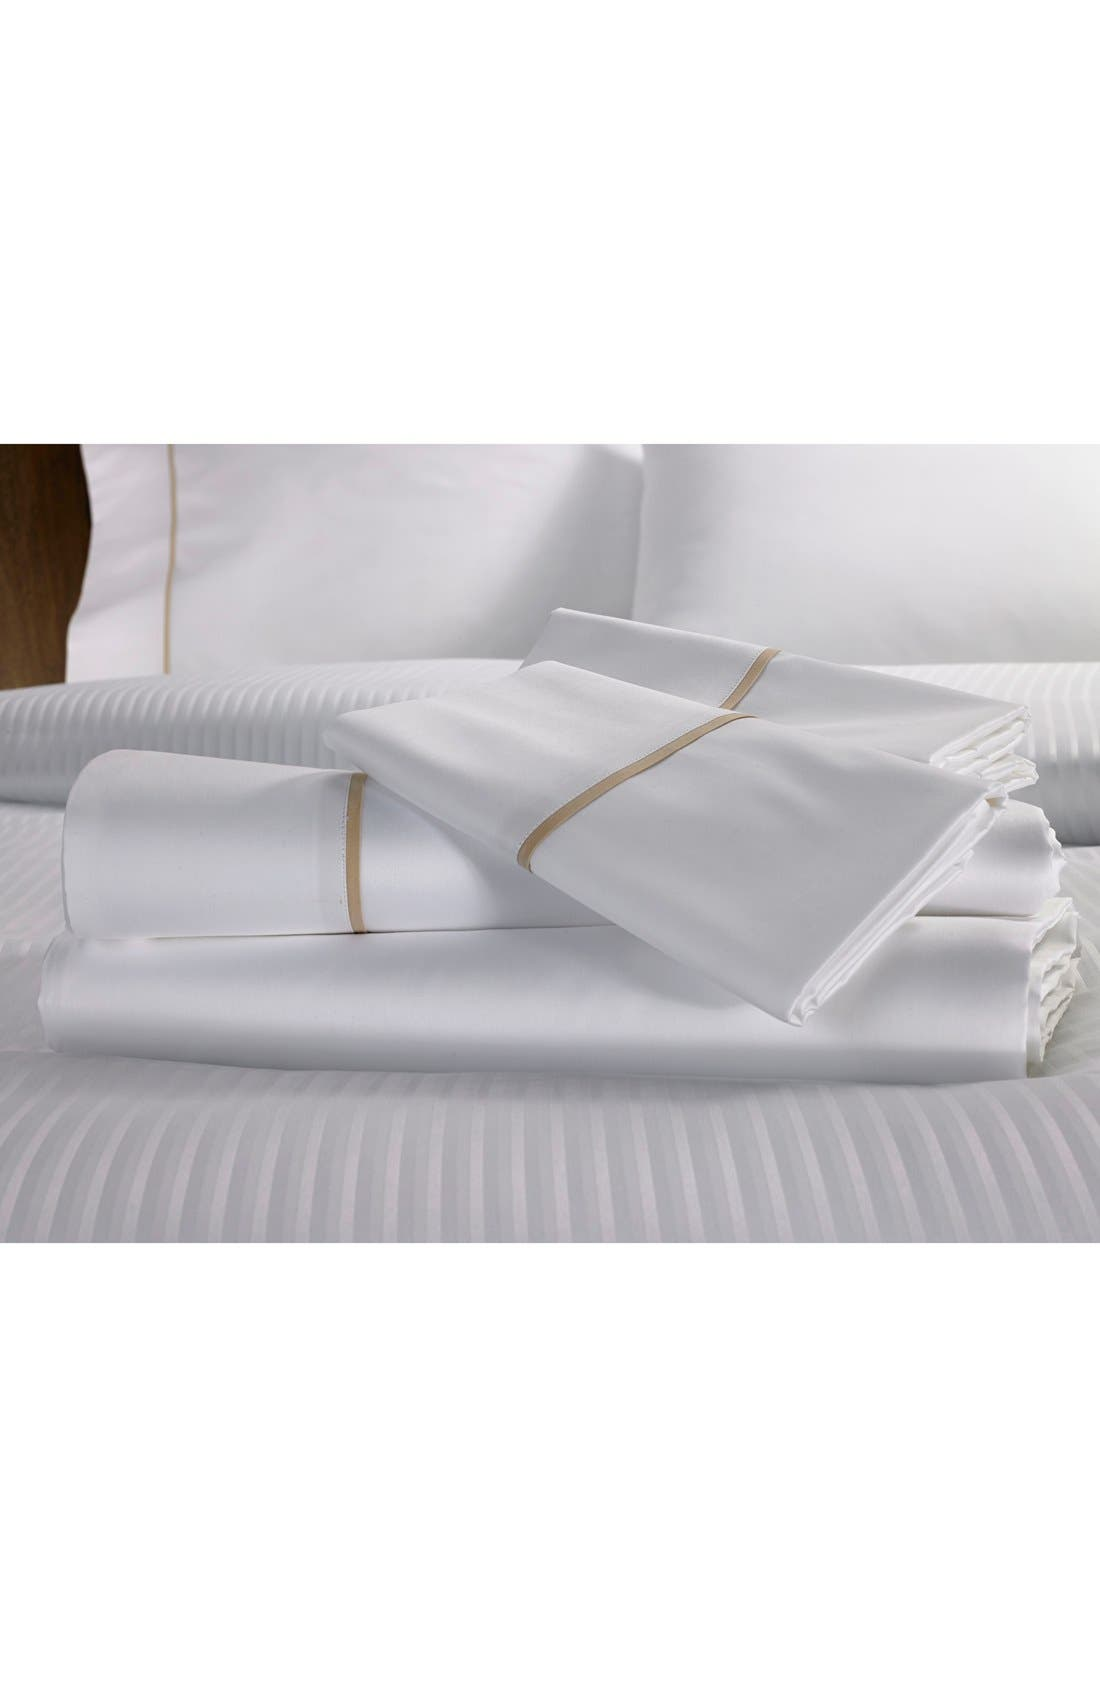 'Ultra Luxe' 600 Thread Count Flat Sheet,                         Main,                         color, 100